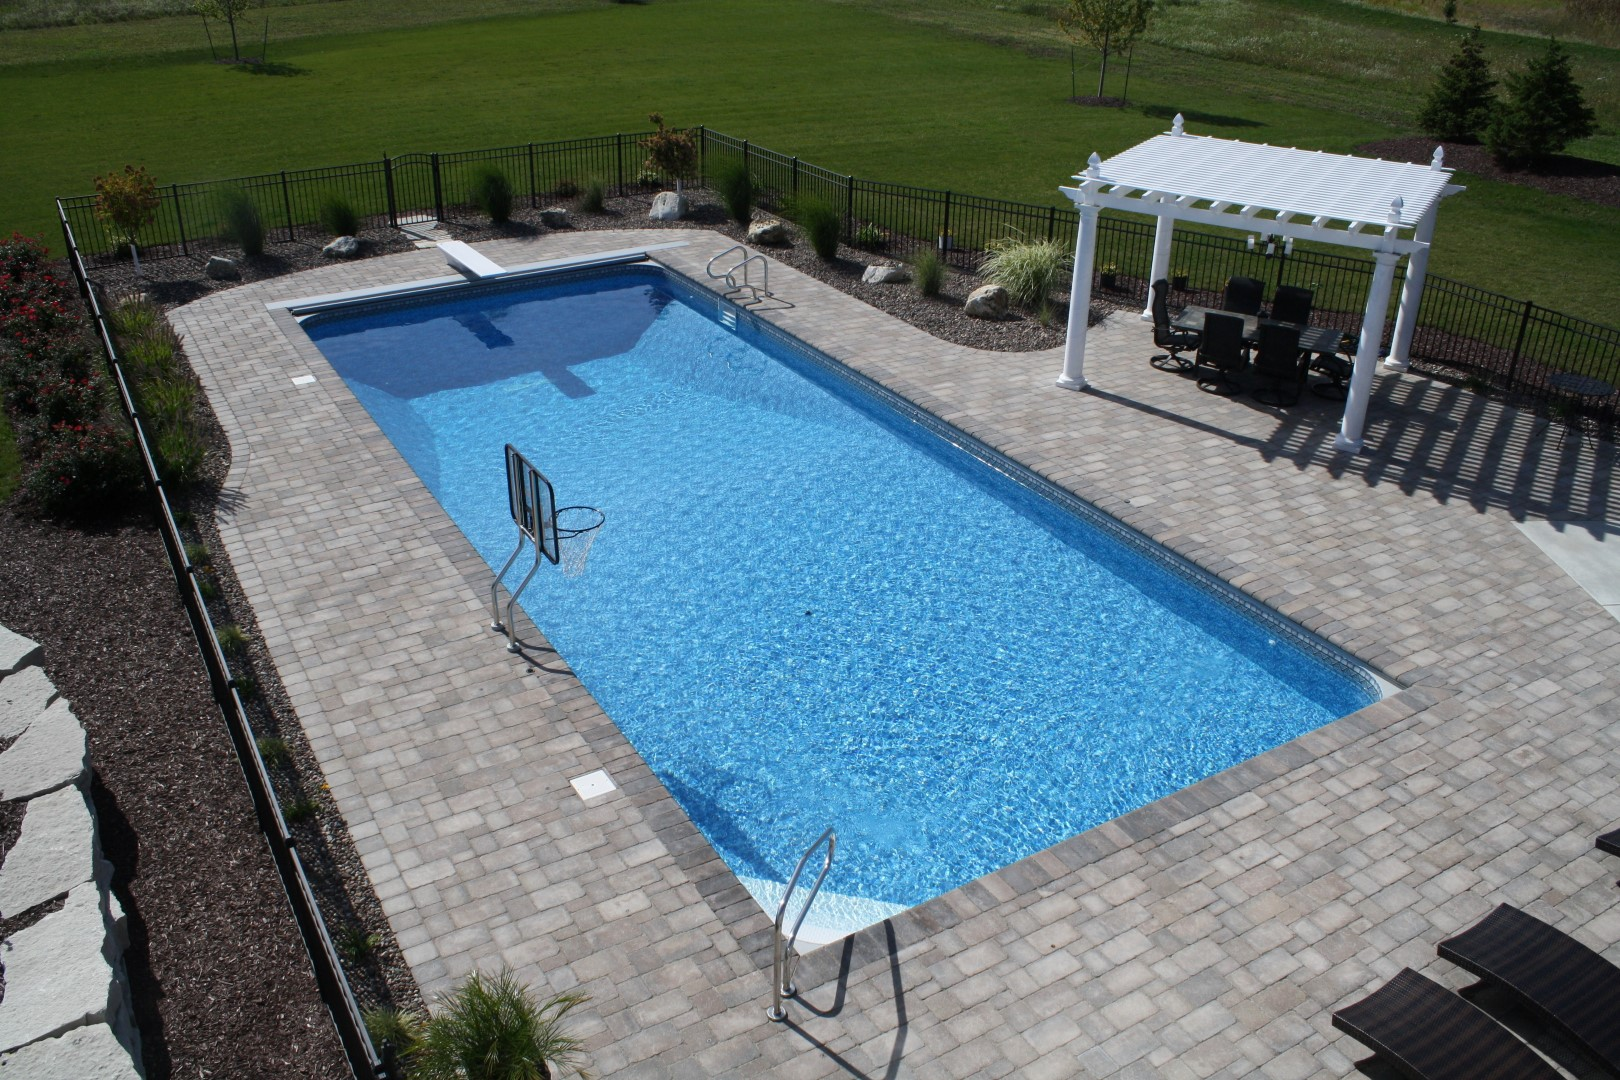 Swimming Pool Designs Pictures - emiliesbeauty.com -